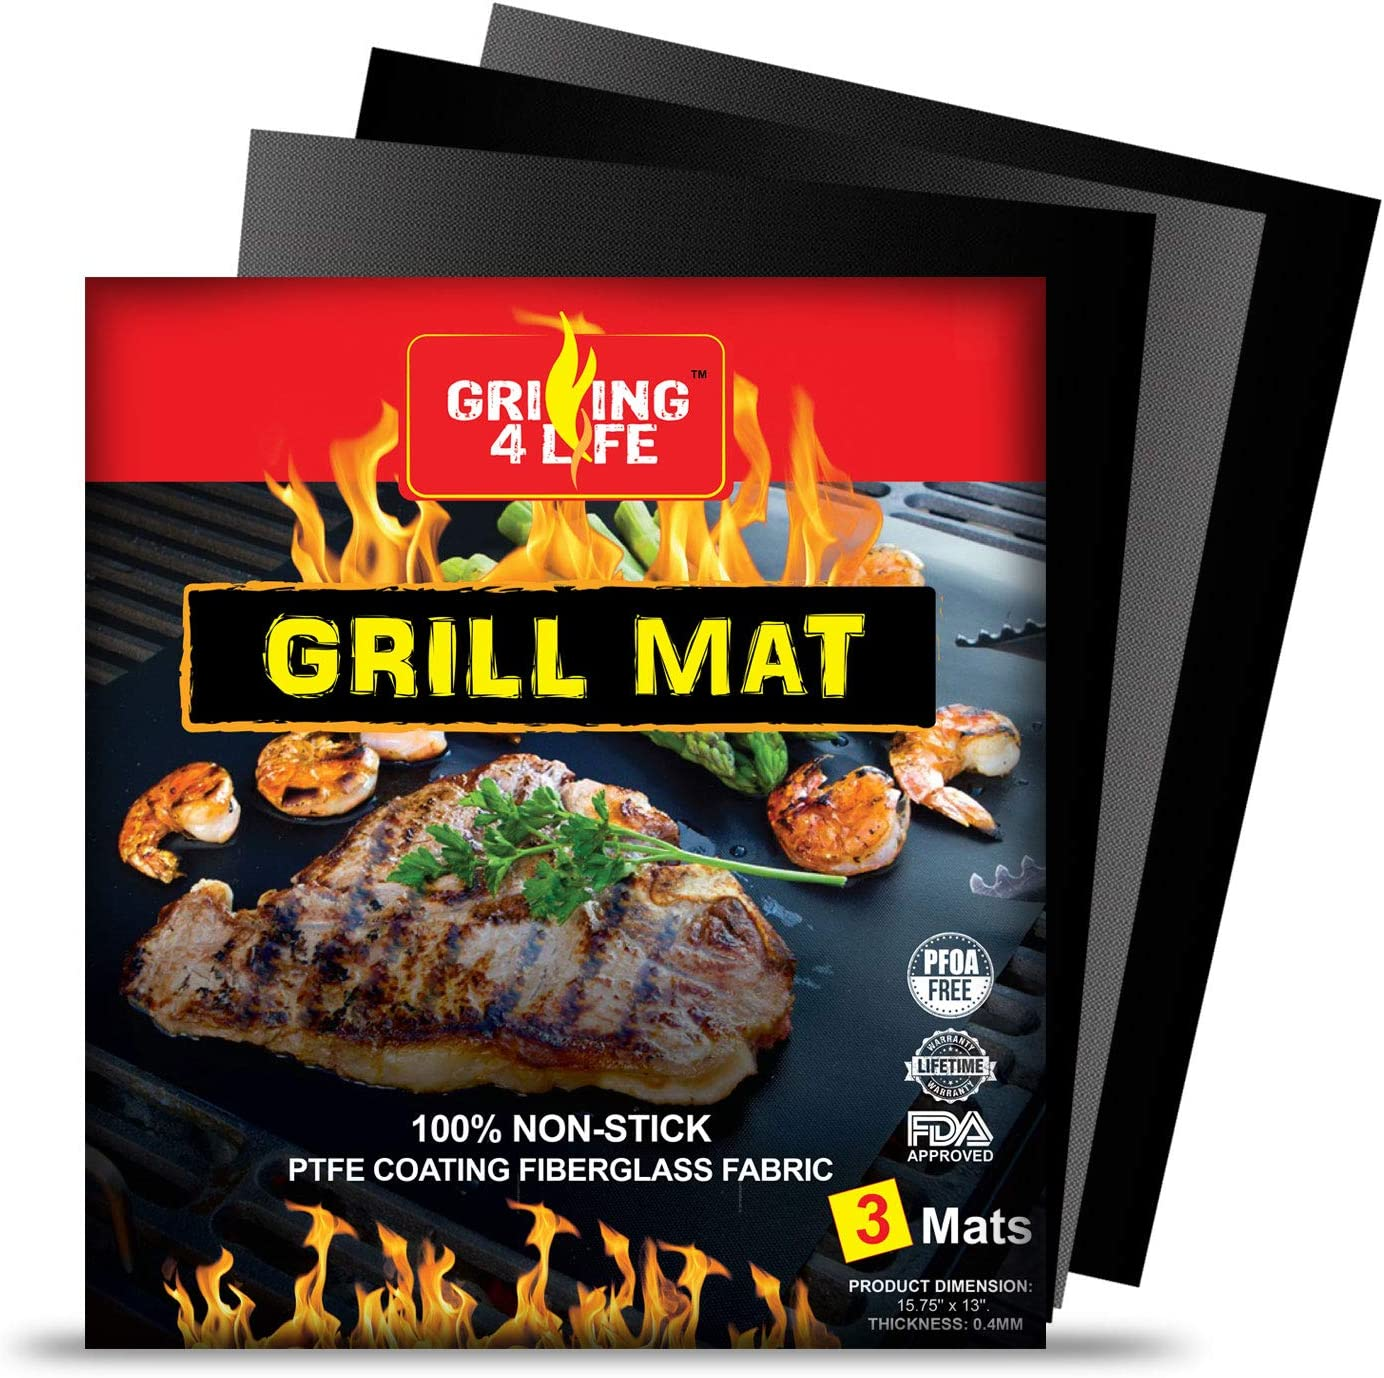 GRILLING 4 LIFE Grill Mat - 2019 Set of 3 Exceptional Premium and Heavy Duty Heat-Resistant Up to 600 Degree BBQ Grill Mats